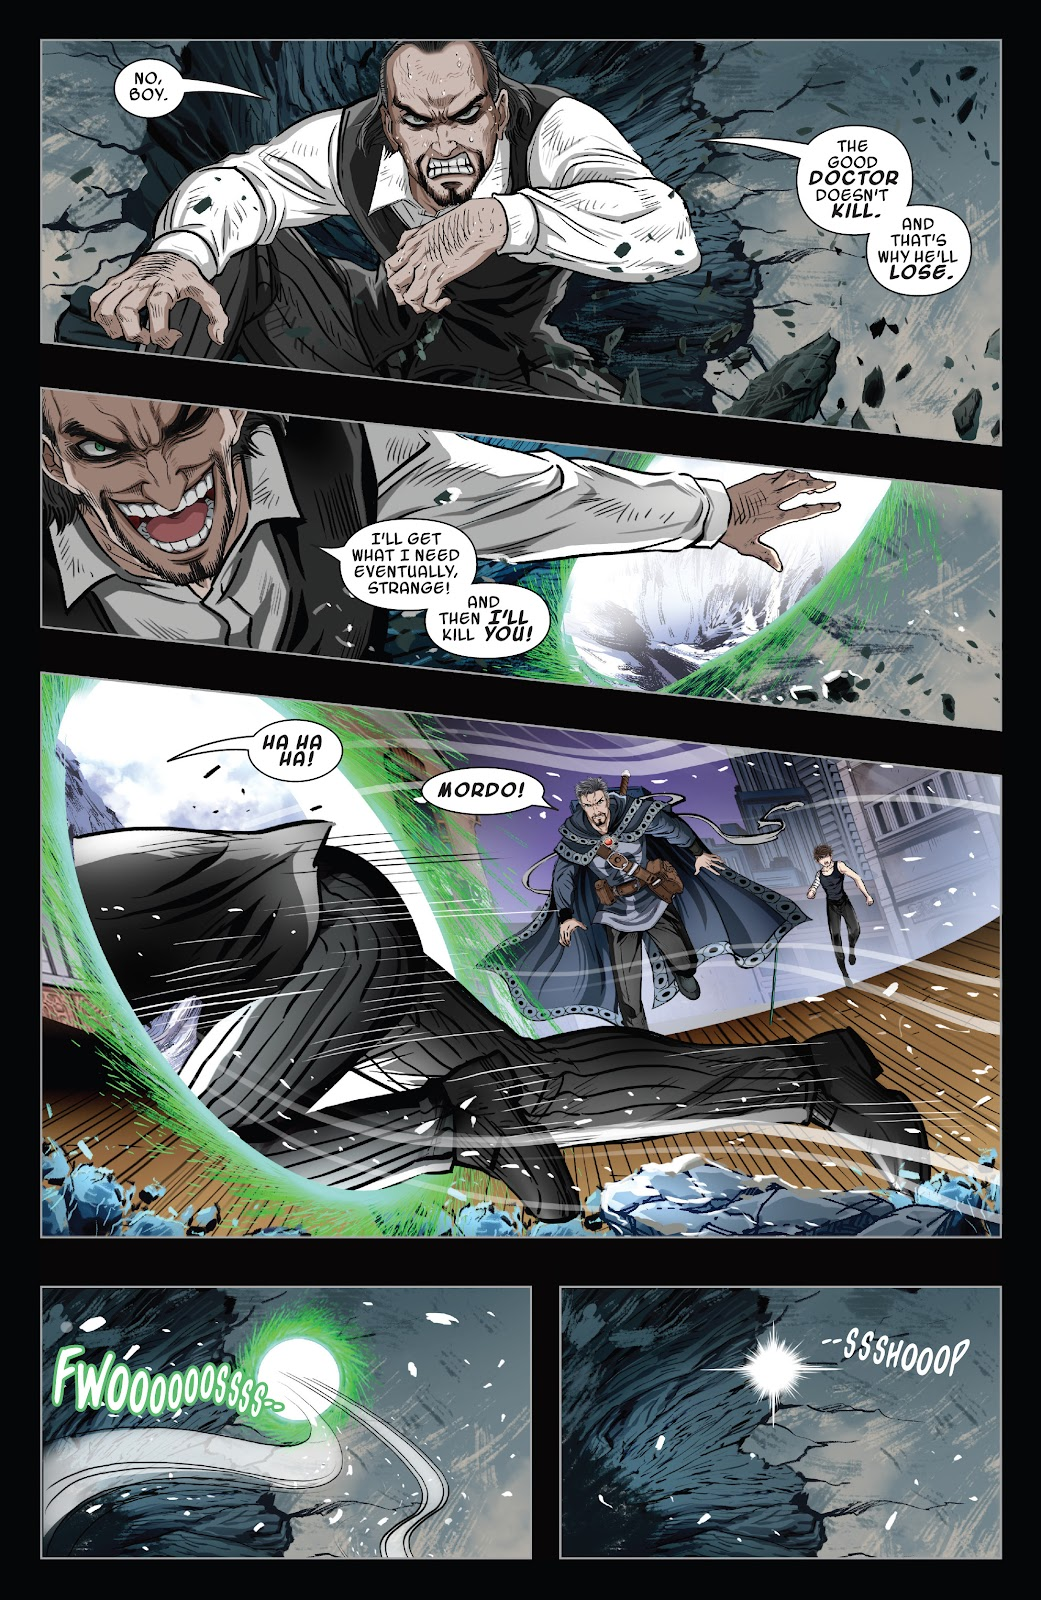 Read online Sword Master comic -  Issue #5 - 21